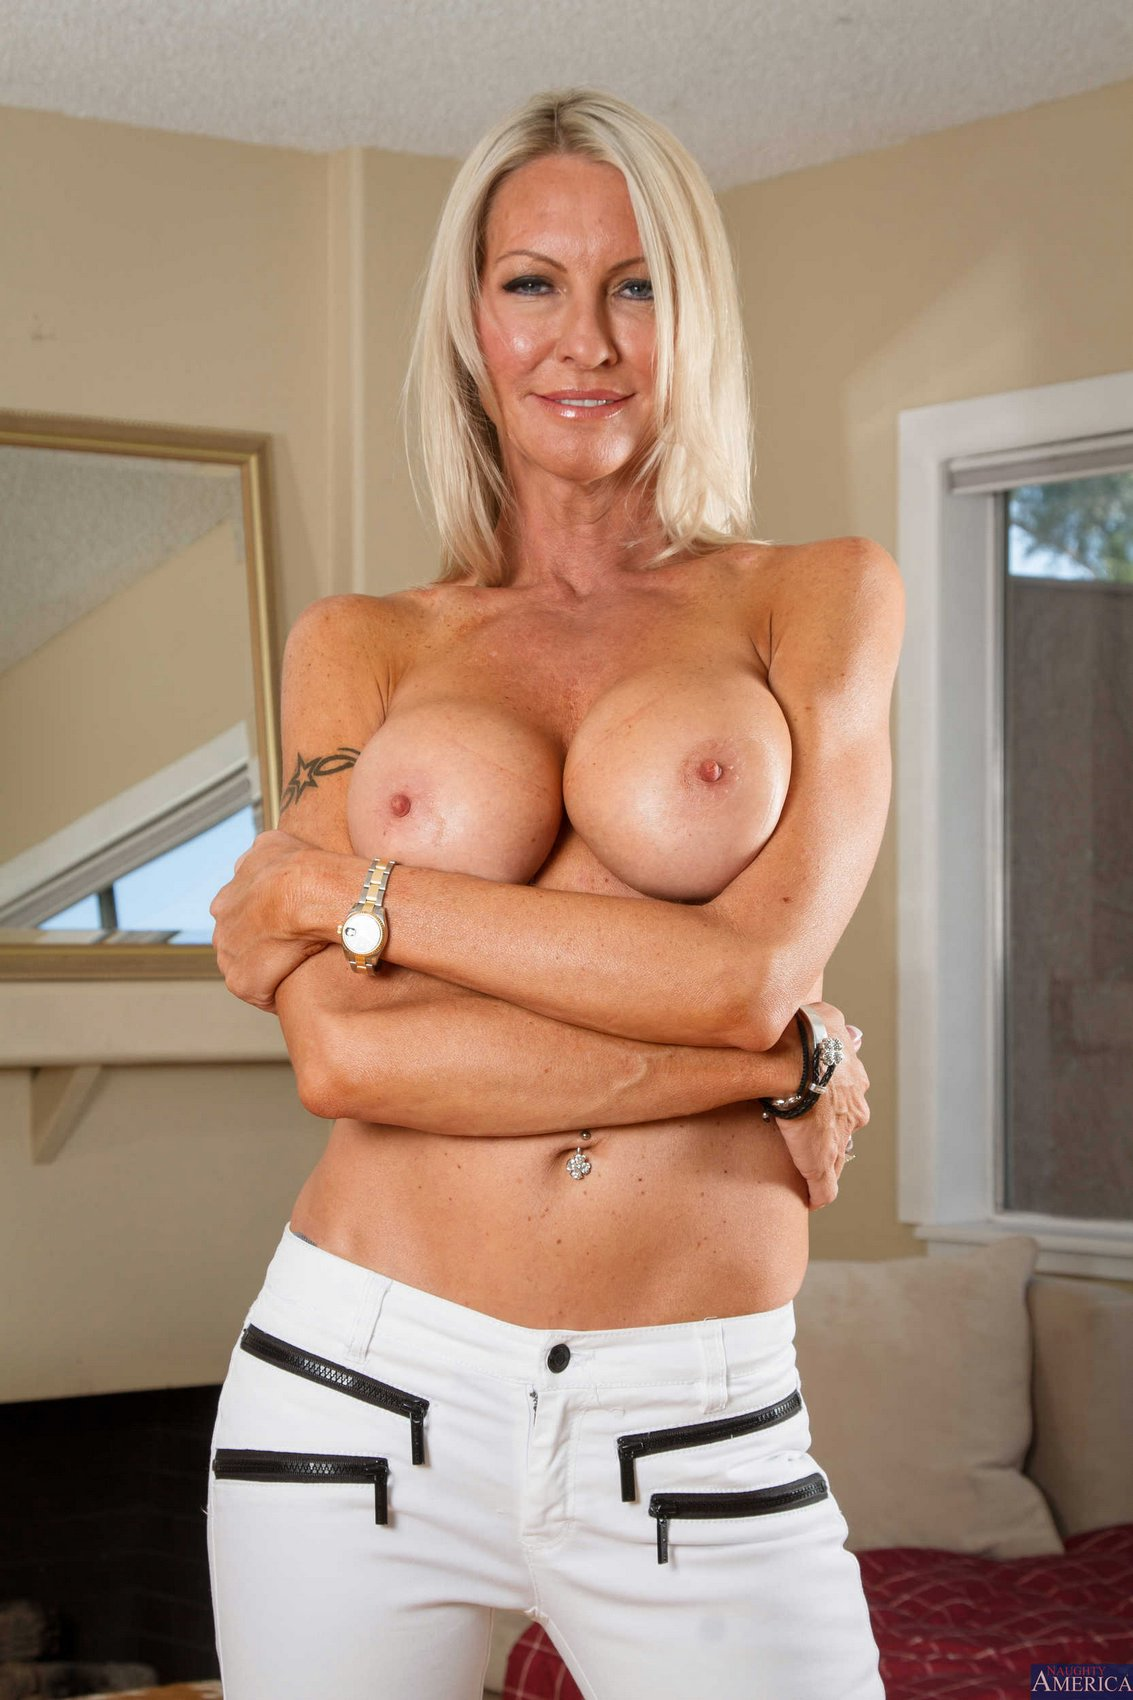 Exaggerate. can Milf stripping 2000 think